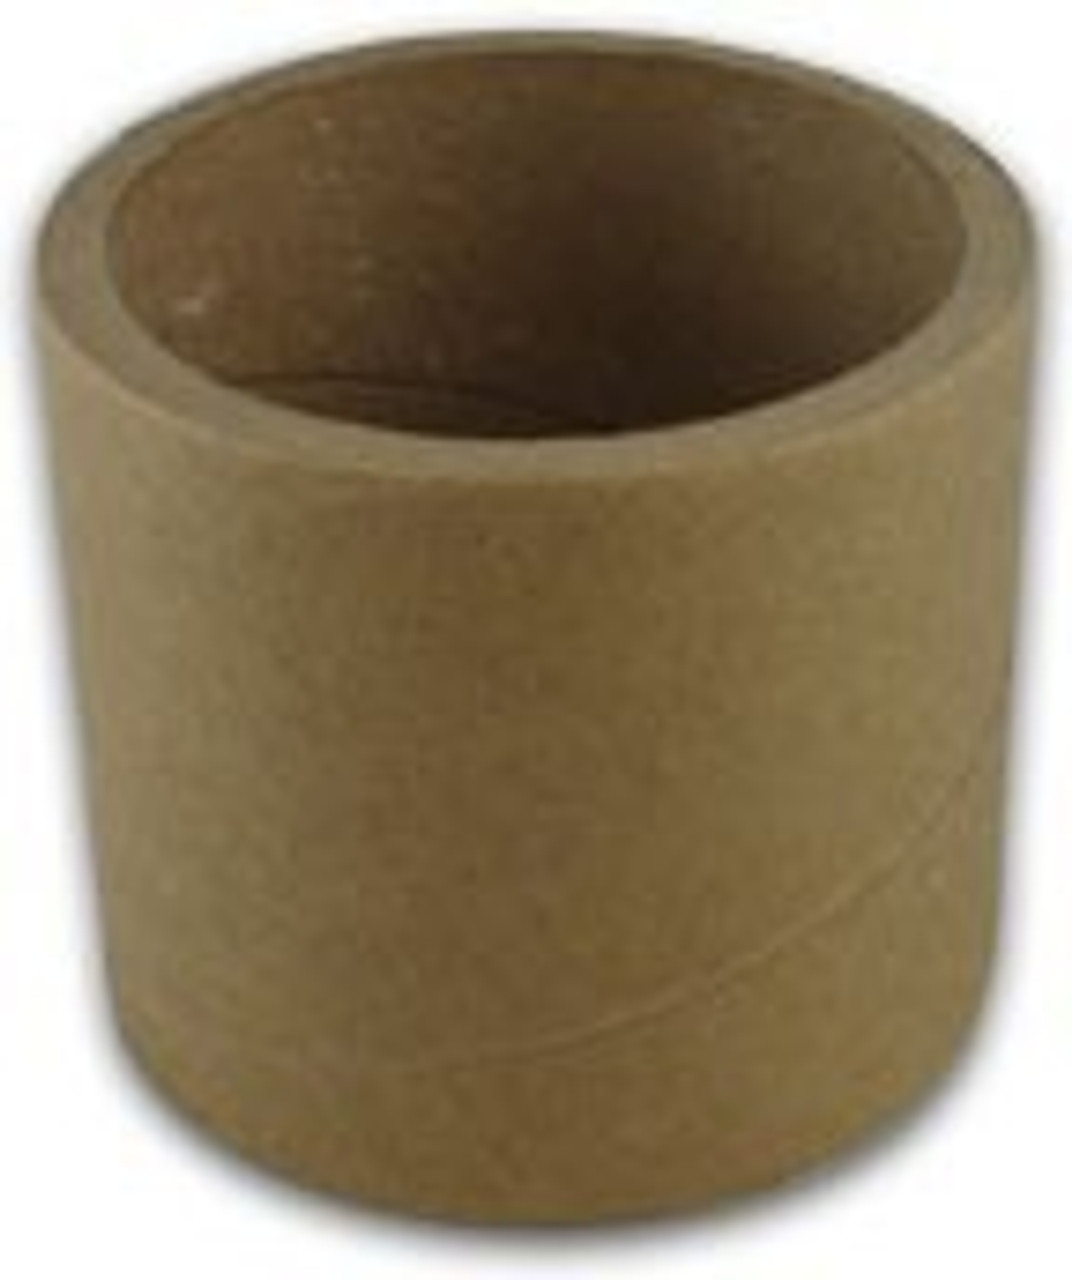 "Empty Cores 3"" X 1/2"" wide - Box of 50 